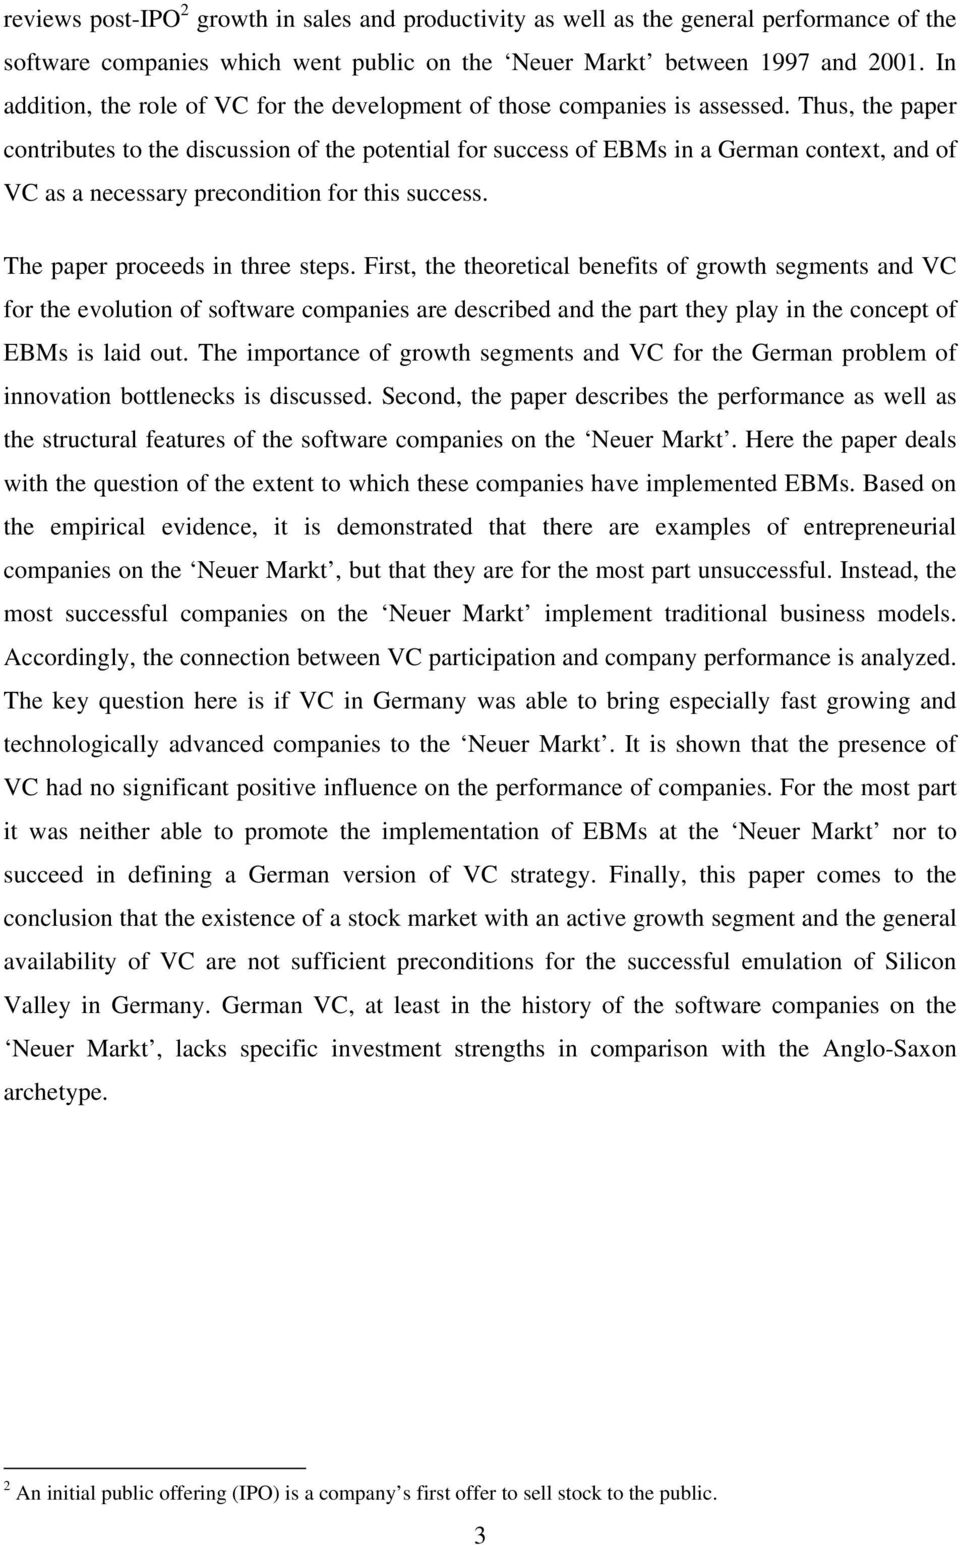 Thus, the paper contributes to the discussion of the potential for success of EBMs in a German context, and of VC as a necessary precondition for this success. The paper proceeds in three steps.